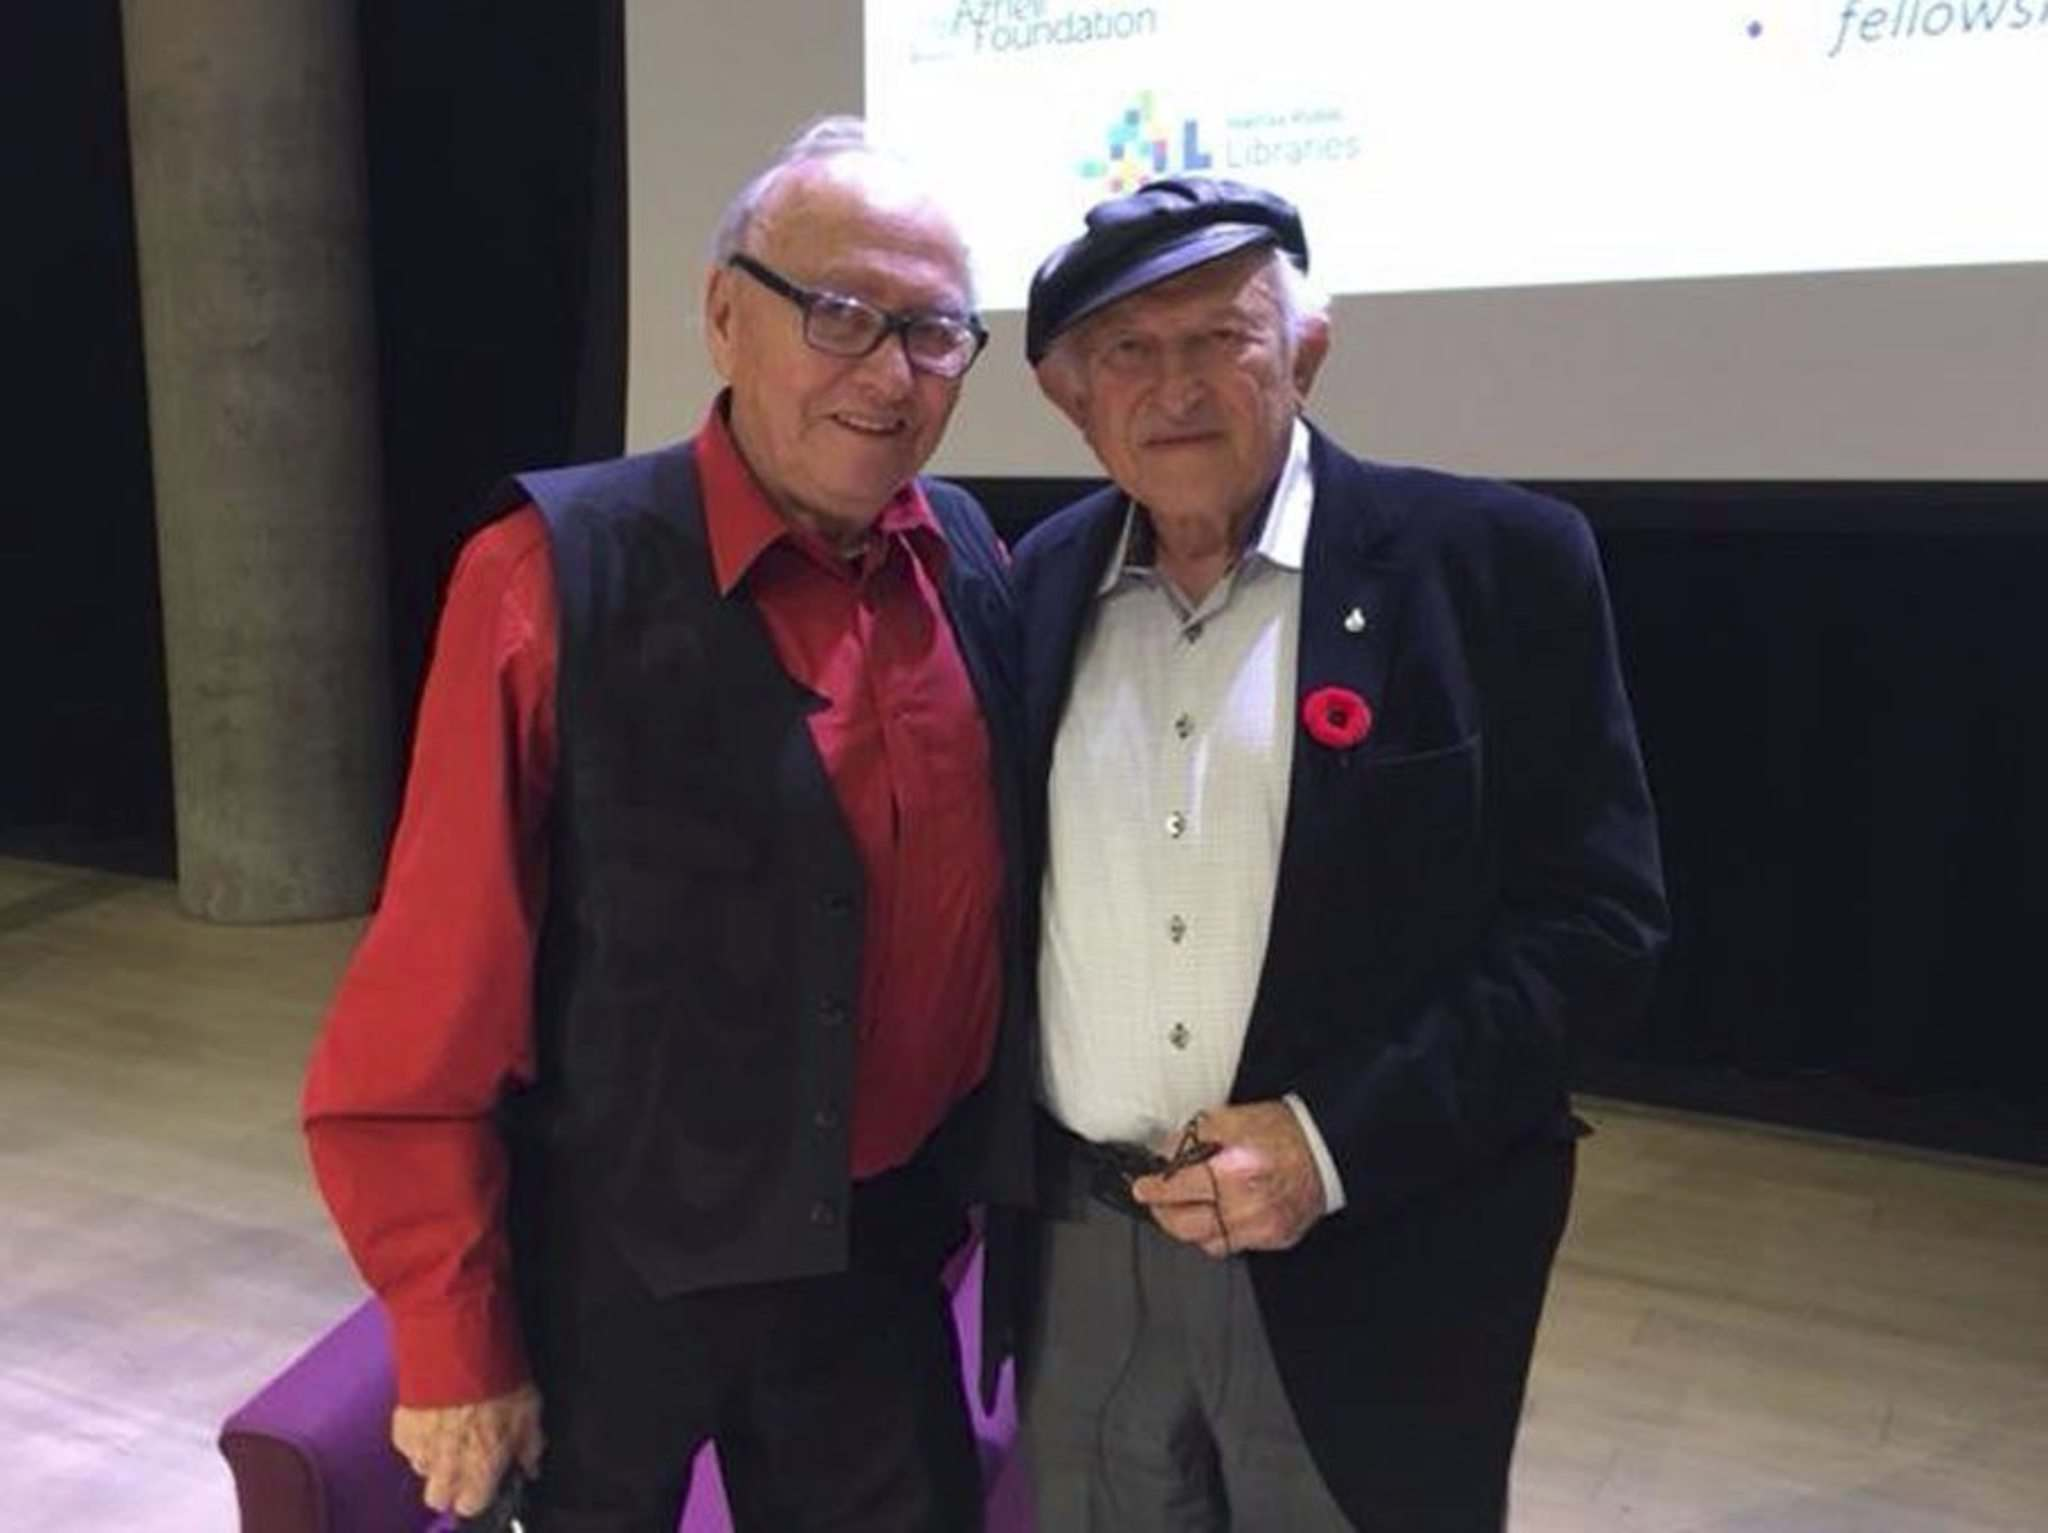 SUPPLIED</p><p>Residential school survivor Theodore Fontaine (left) and Holocaust survivor Nate Leipciger will be sharing their experiences Sunday at the Canadian Museum for Human Rights.</p>